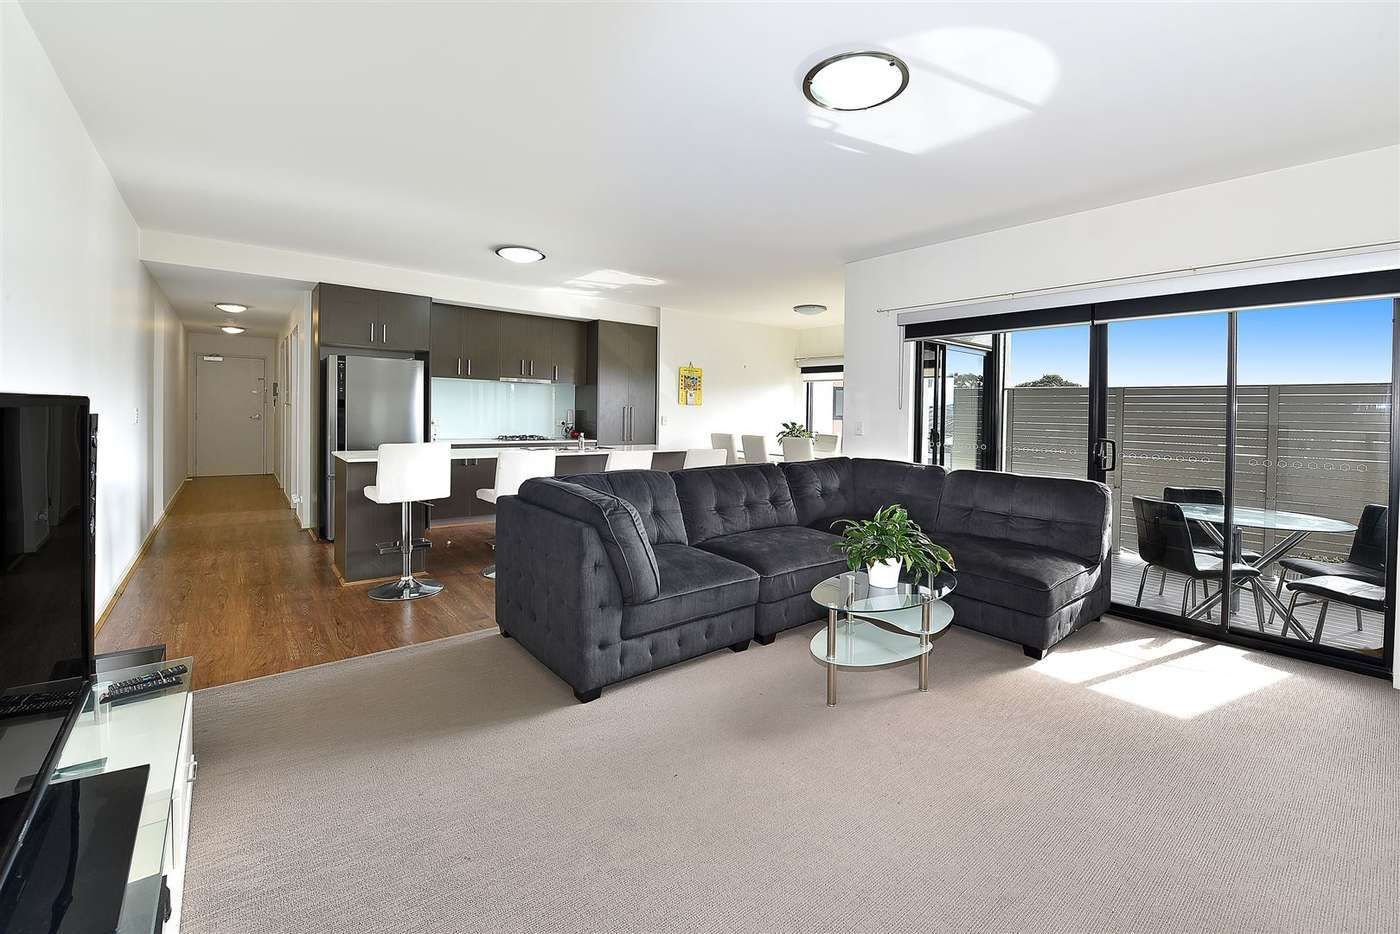 Main view of Homely apartment listing, 110/78 Epping Road, Epping VIC 3076